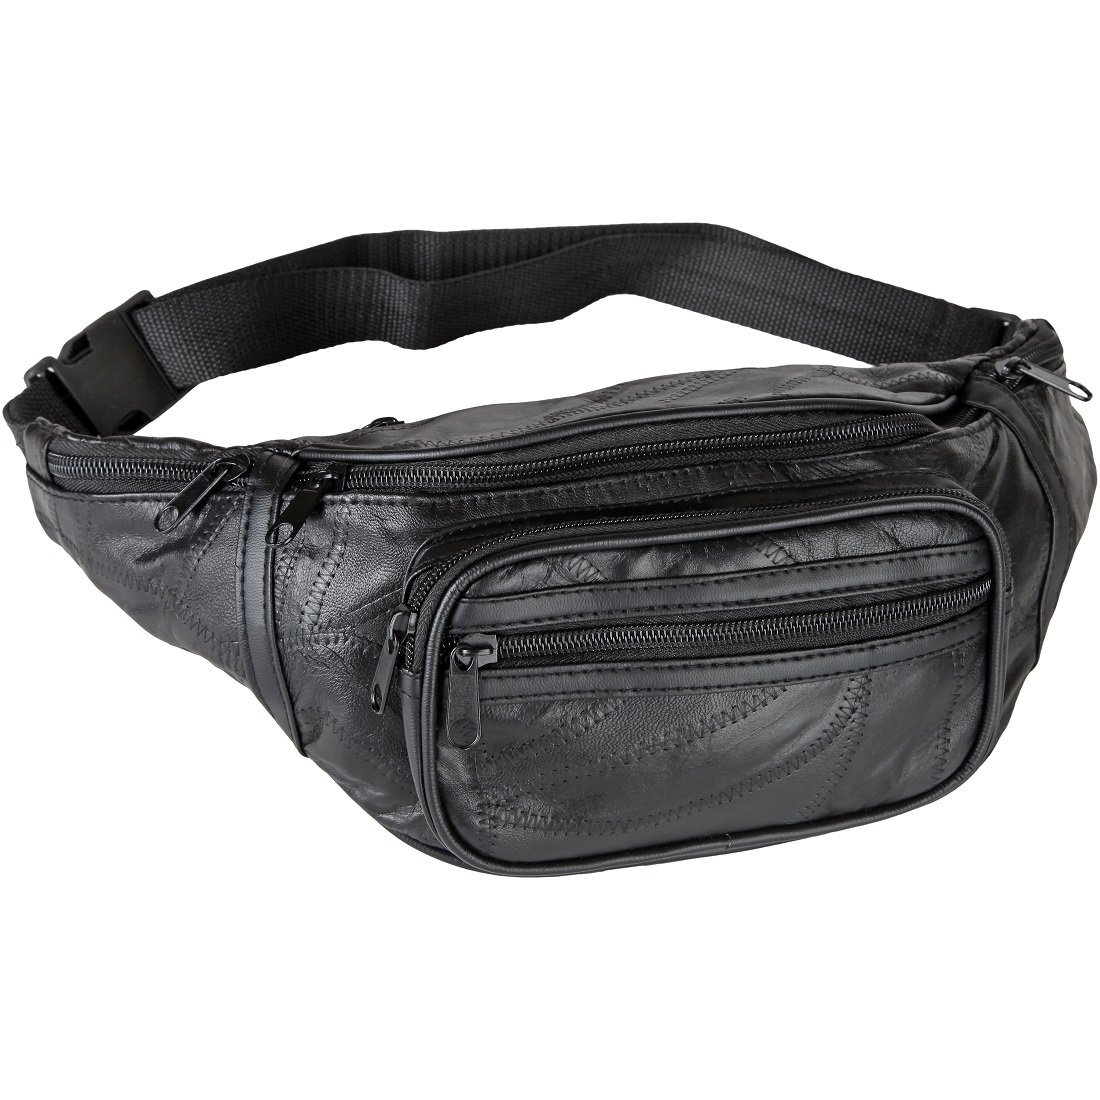 5eecac9a832dfc Home-X Genuine Leather Lambskin Waist Bag, Fanny Pack